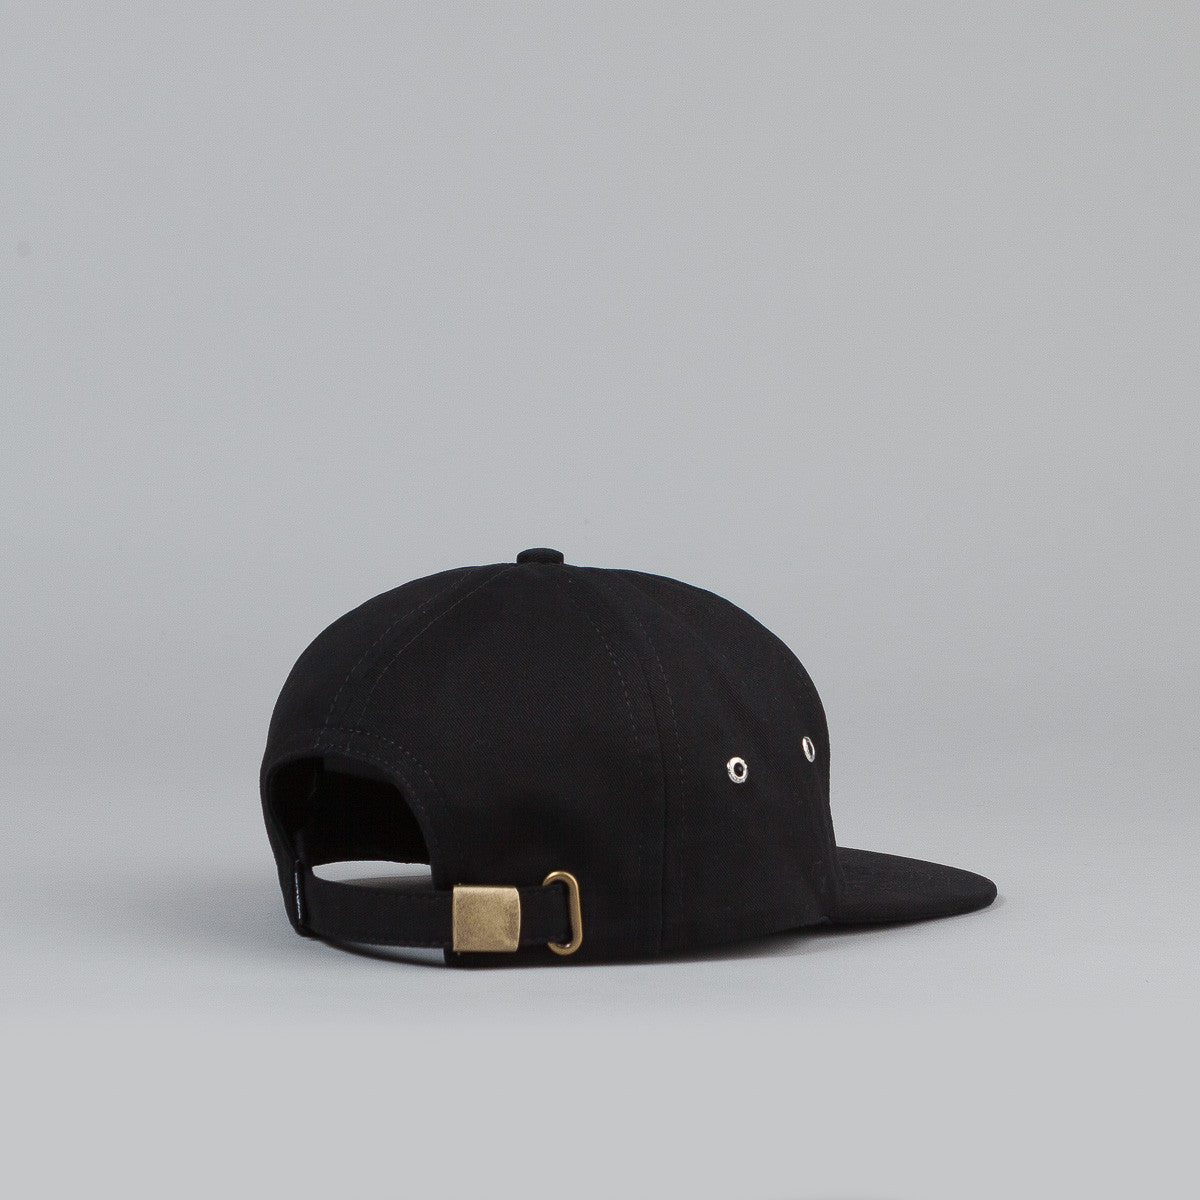 Rip N Dip Japanese Cream 5 Panel Cap - Black